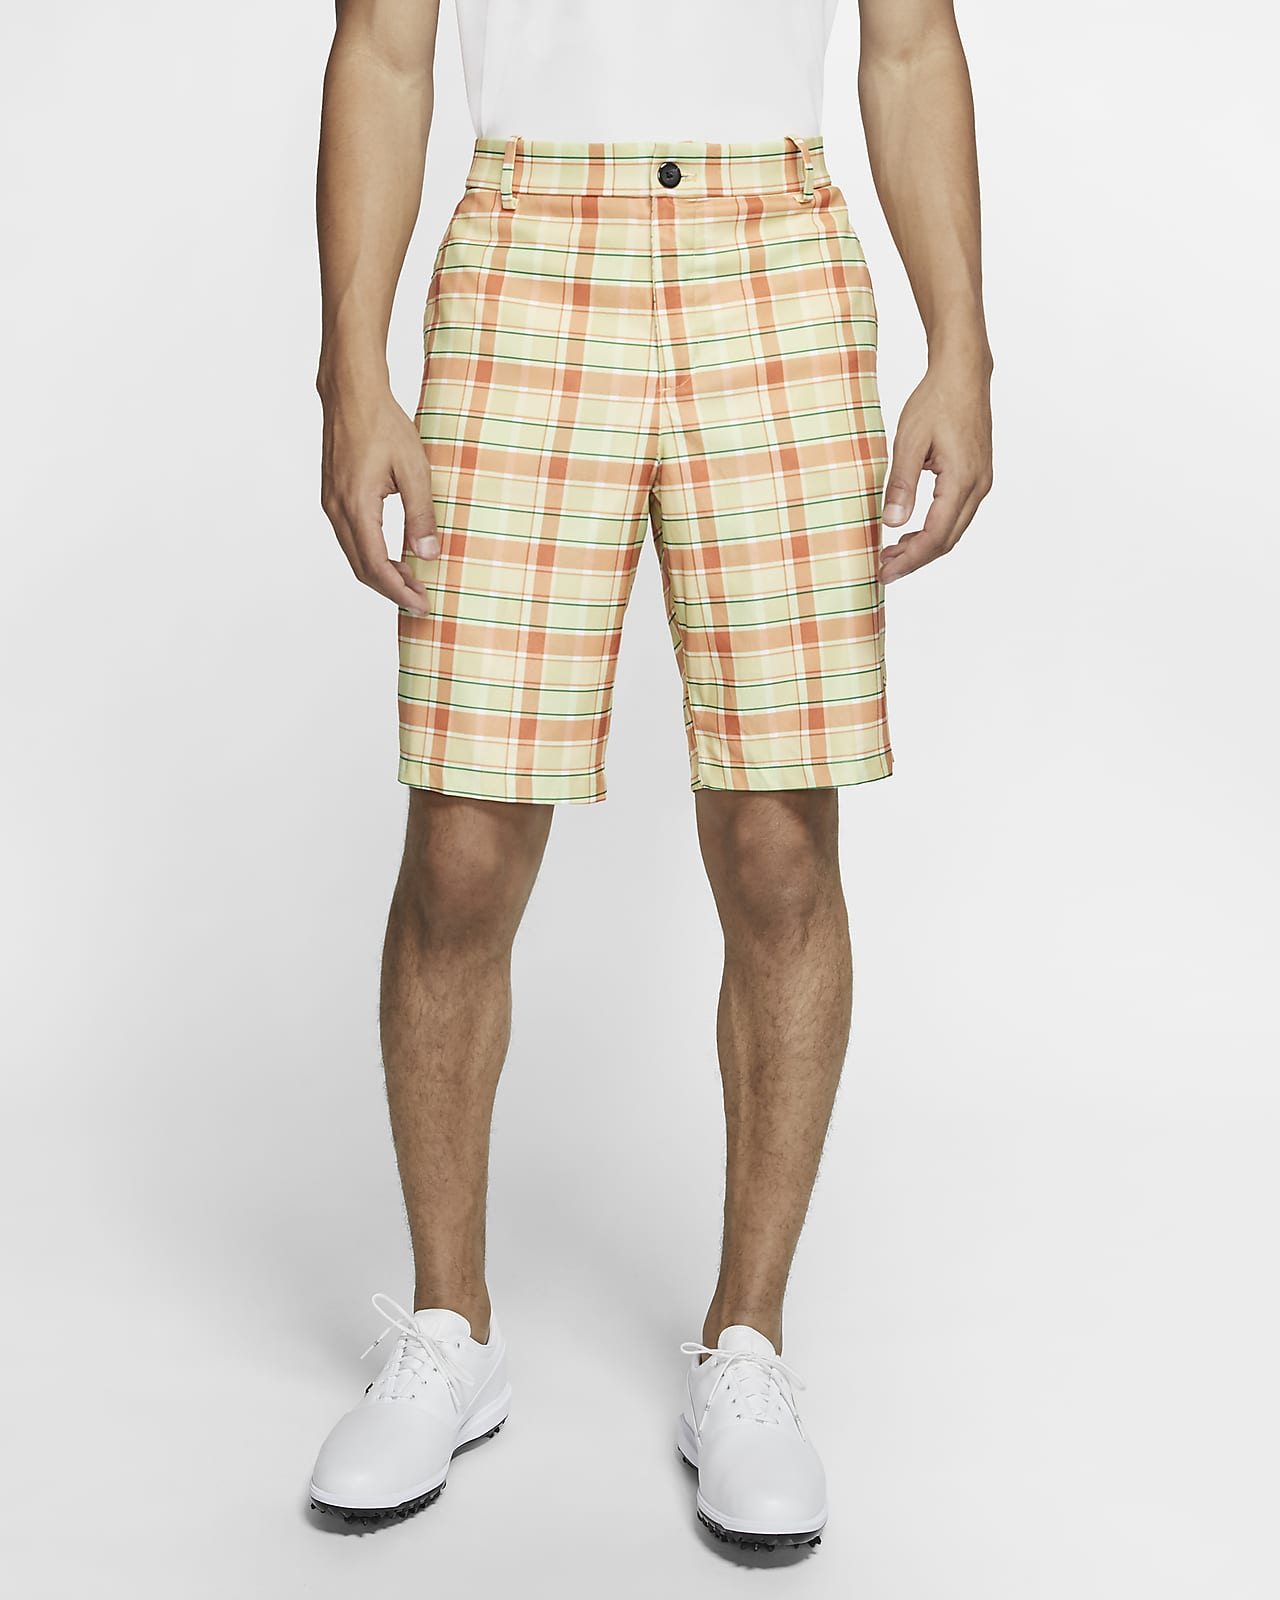 Nike Flex Men's Checked Golf Shorts